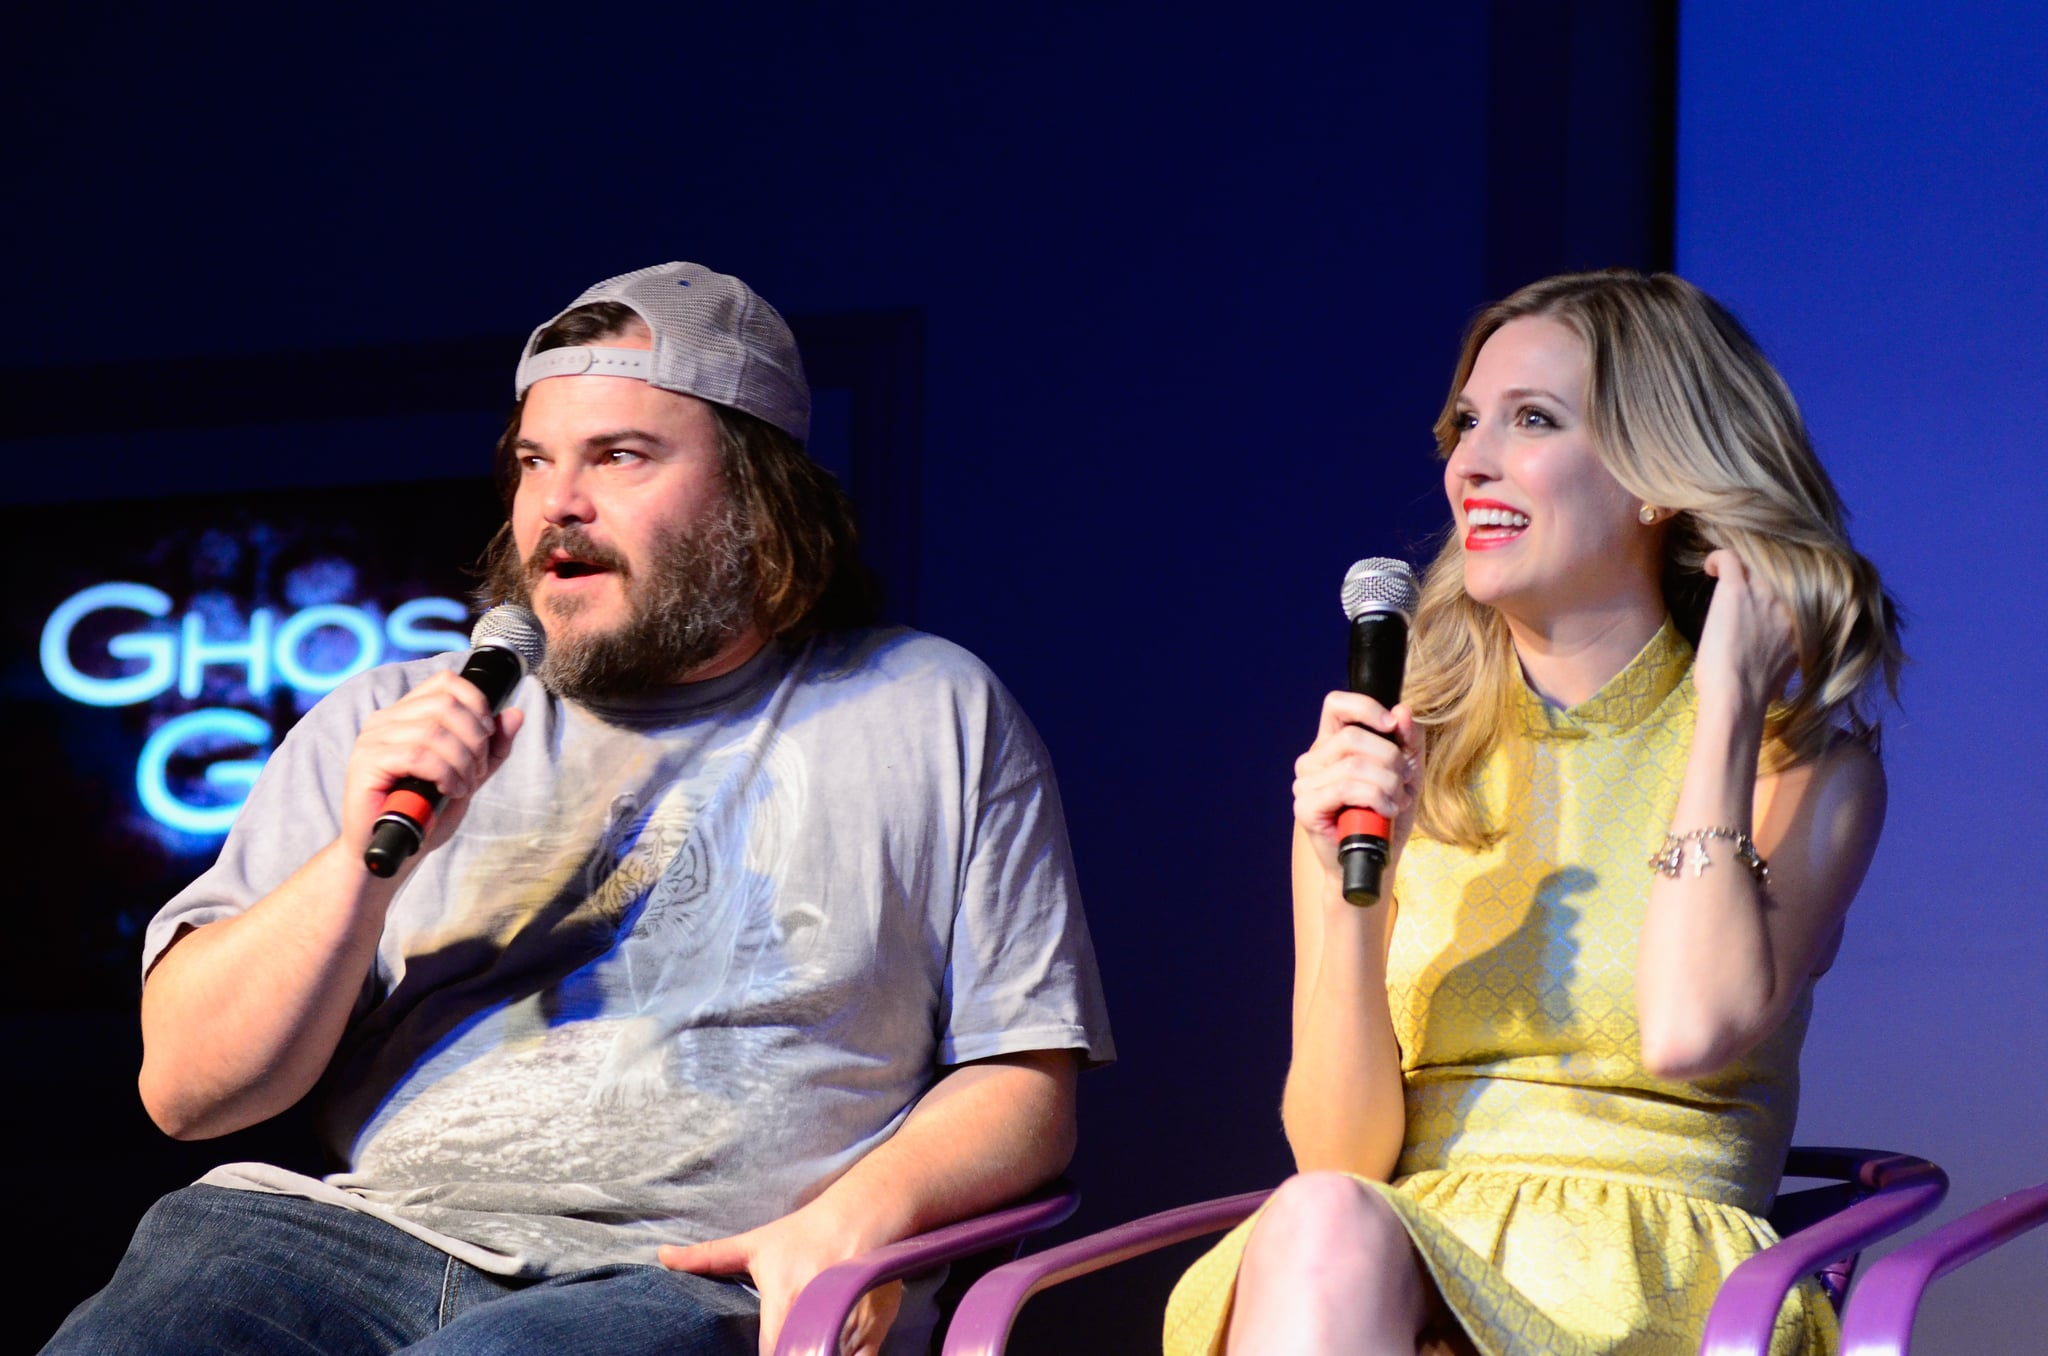 Jack Black and Amanda Lund spoke onstage during the festivities.